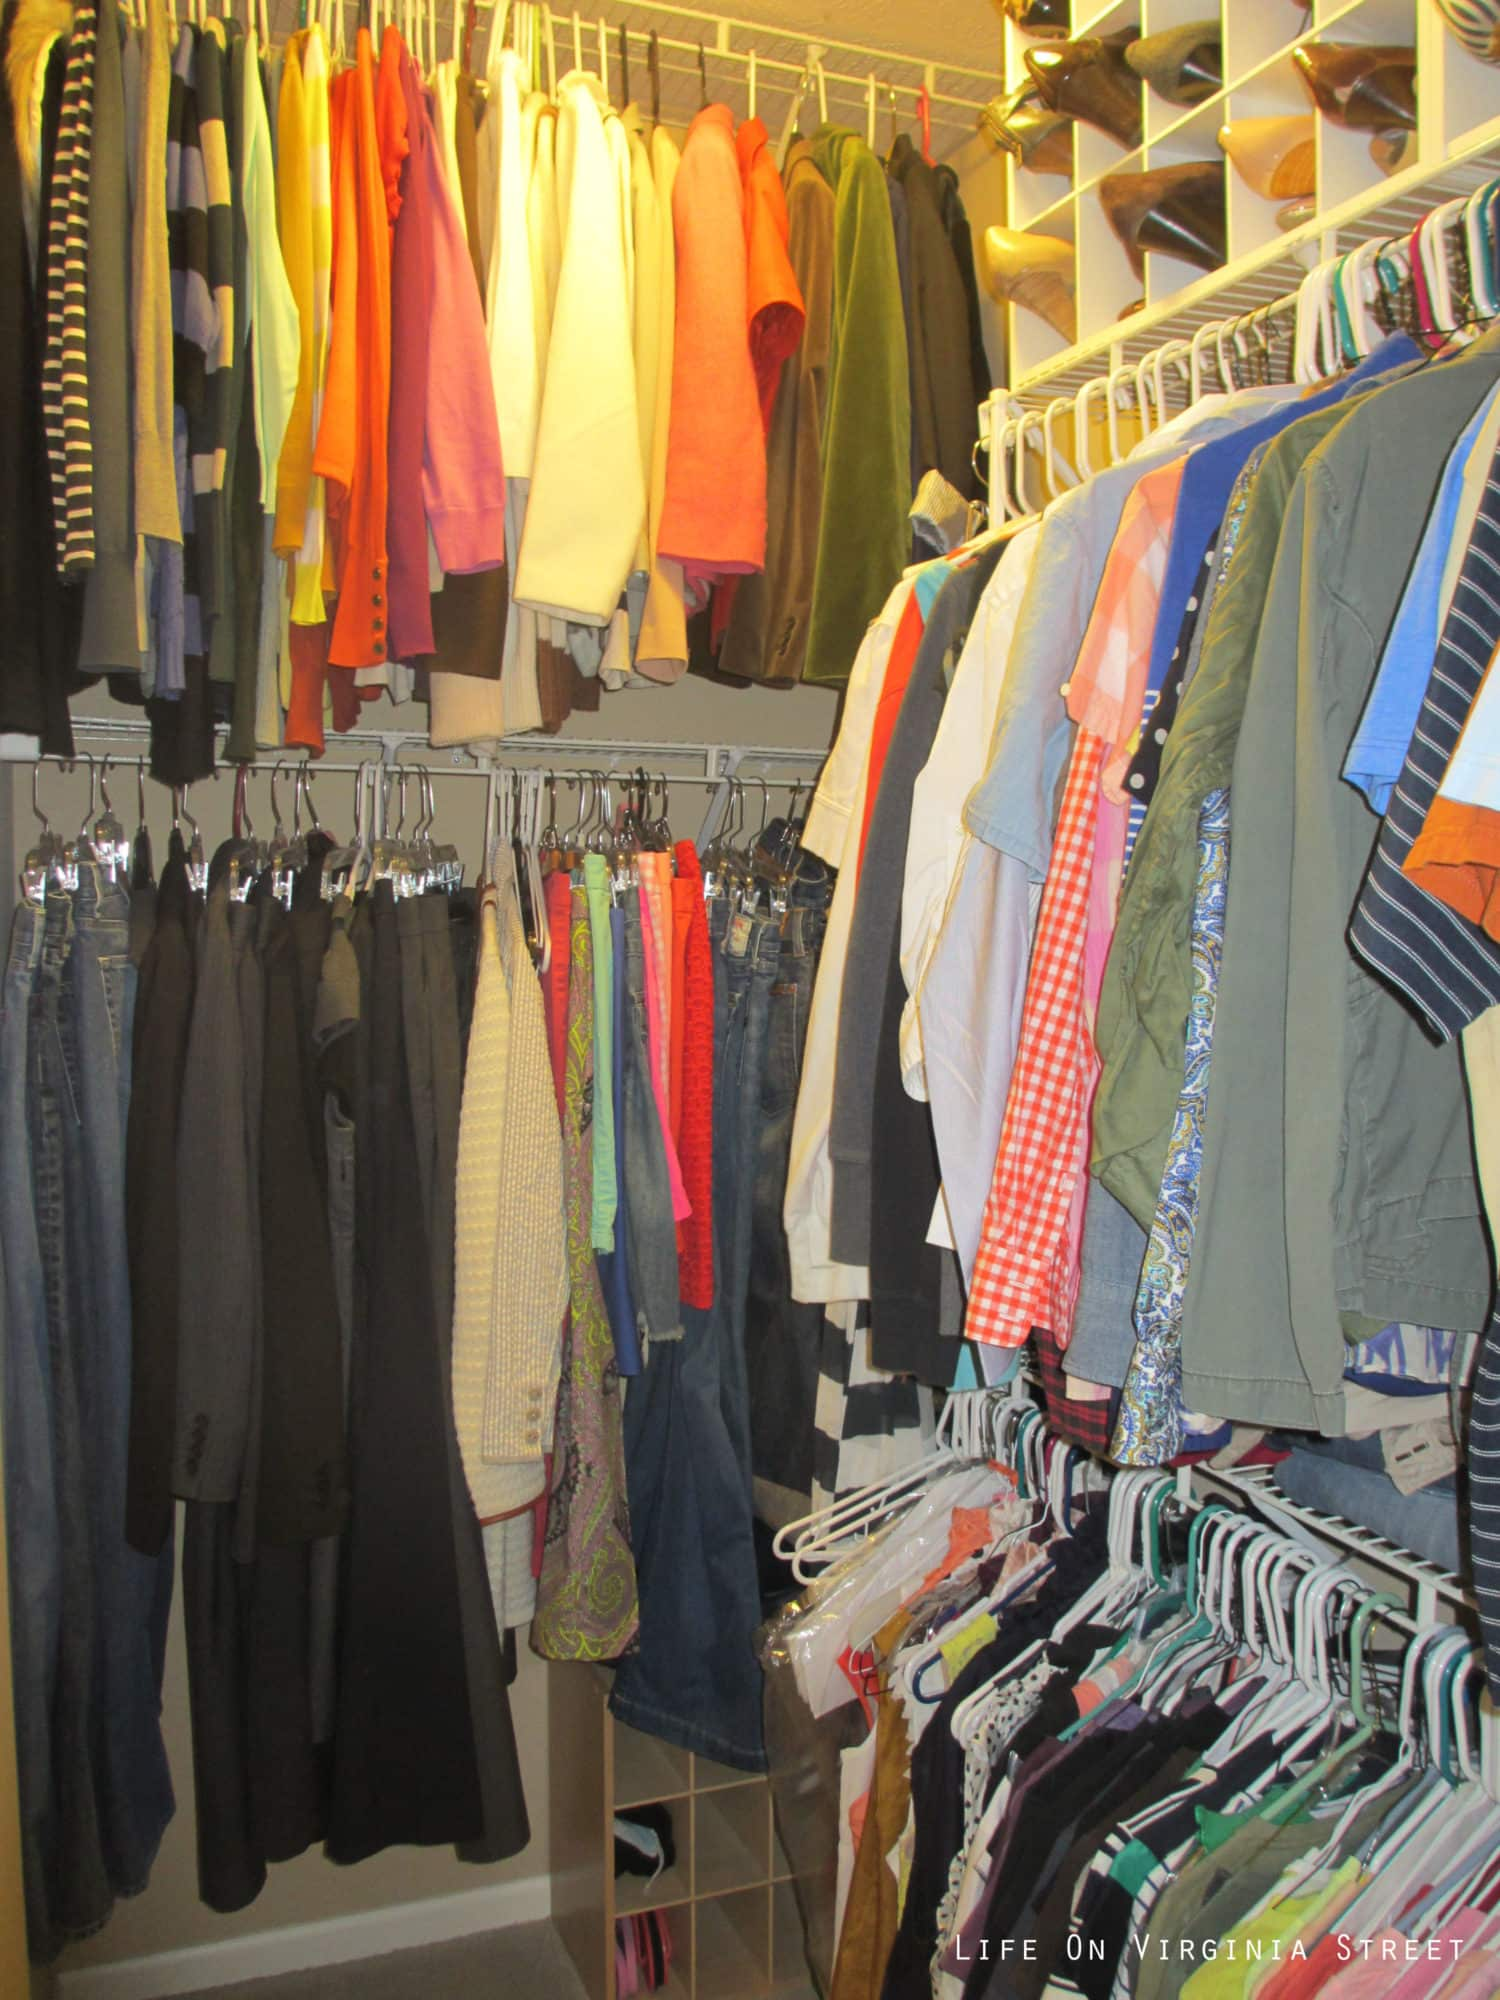 A crumpled closet with clothes hanging up and shoes above the clothes.